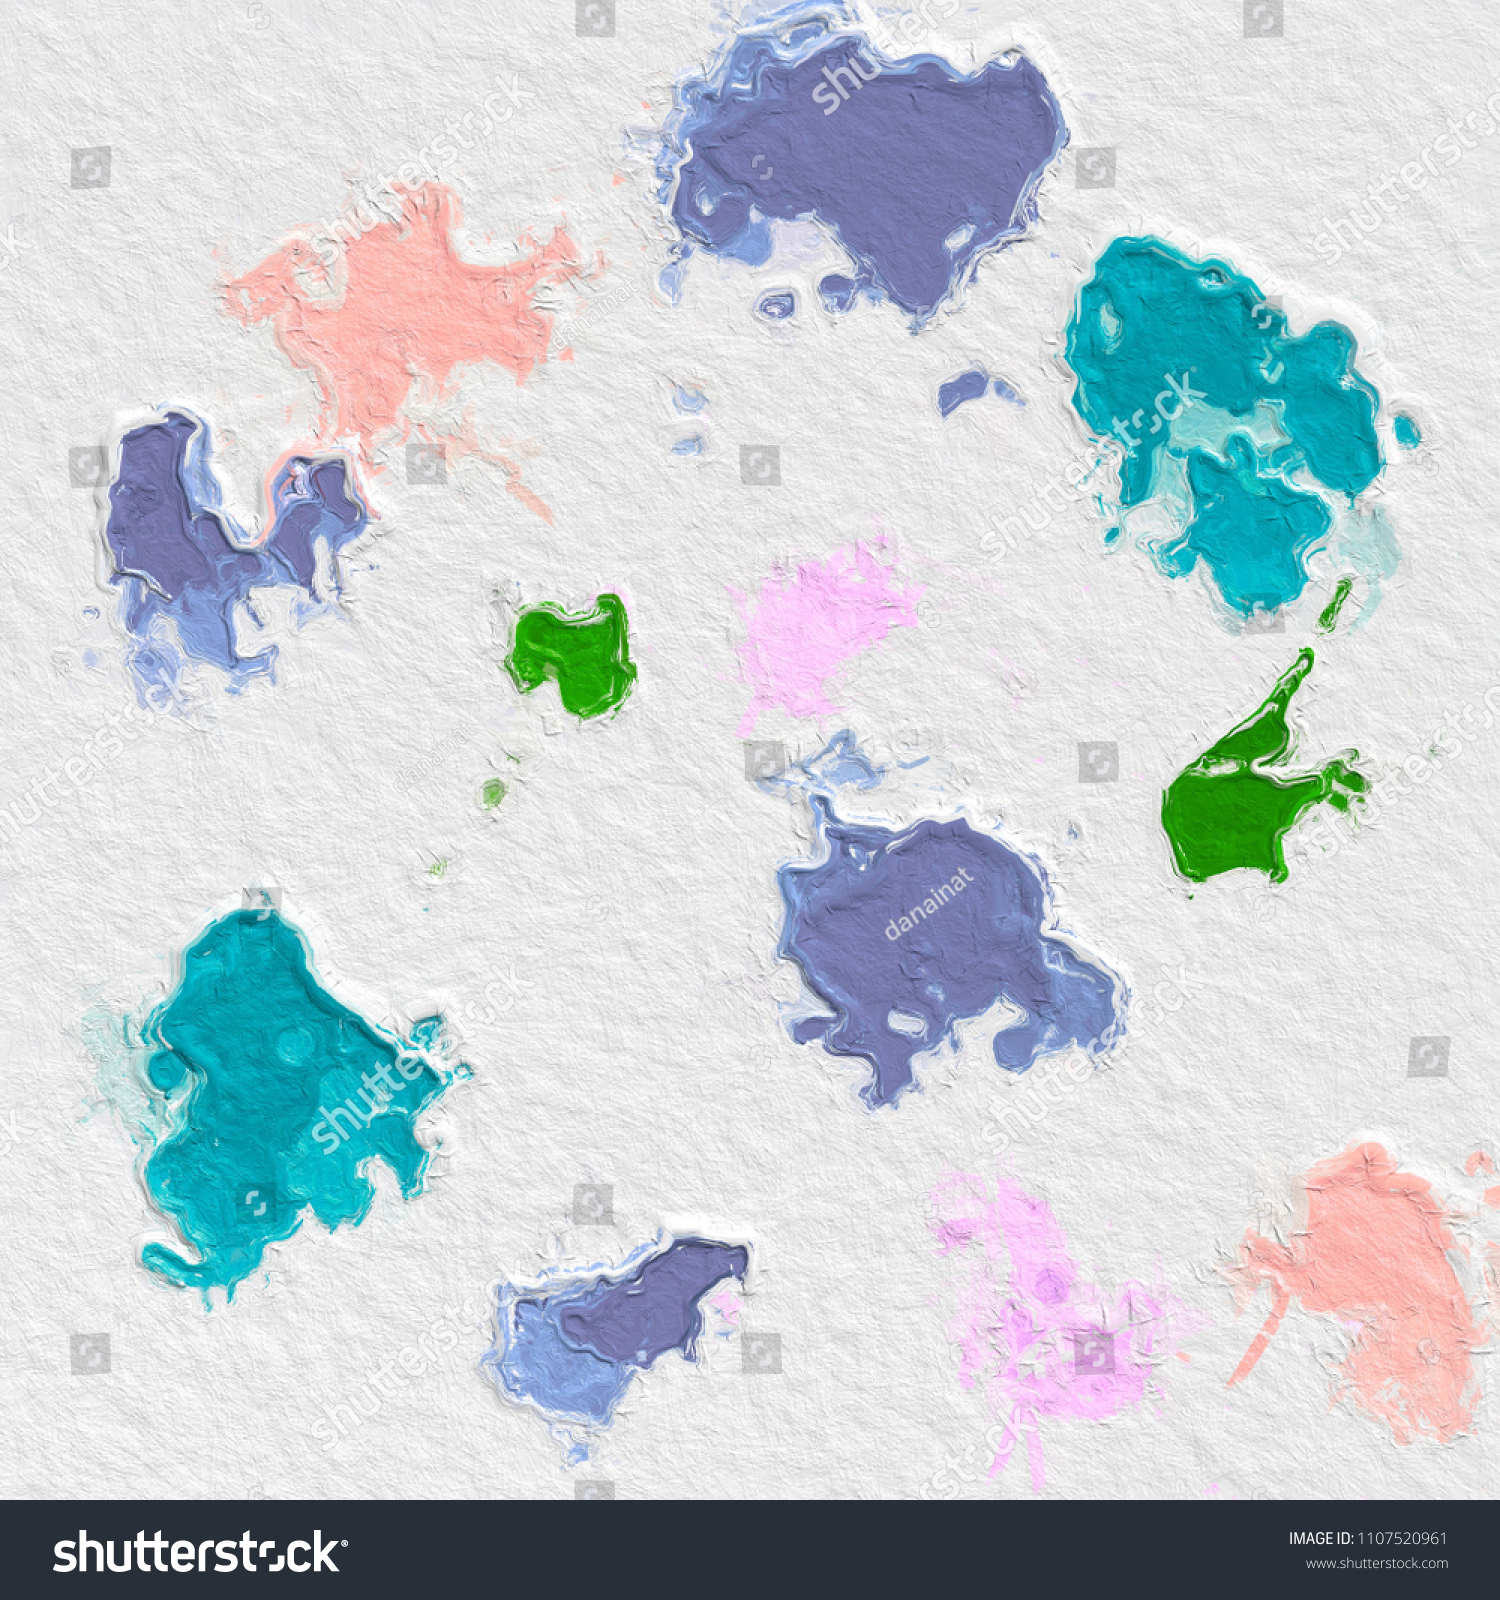 Paint Like Graphic Illustration The Nice Color Glossy Beautiful Painted